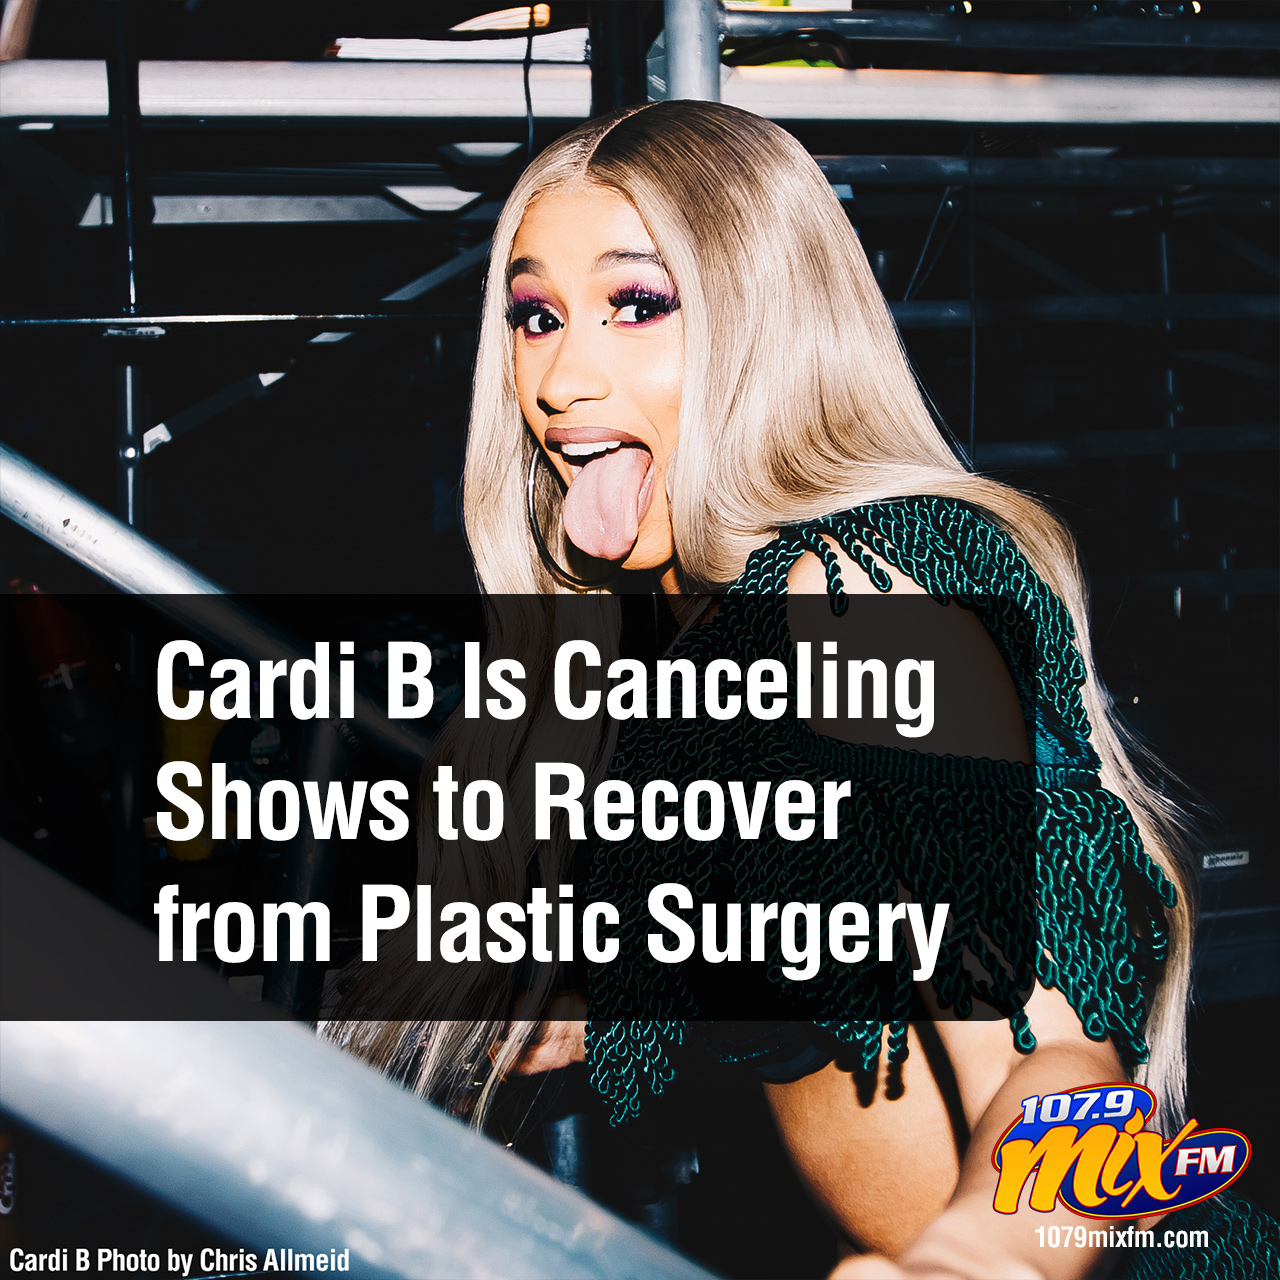 Cardi B Is Canceling Shows… to Recover from Plastic Surgery